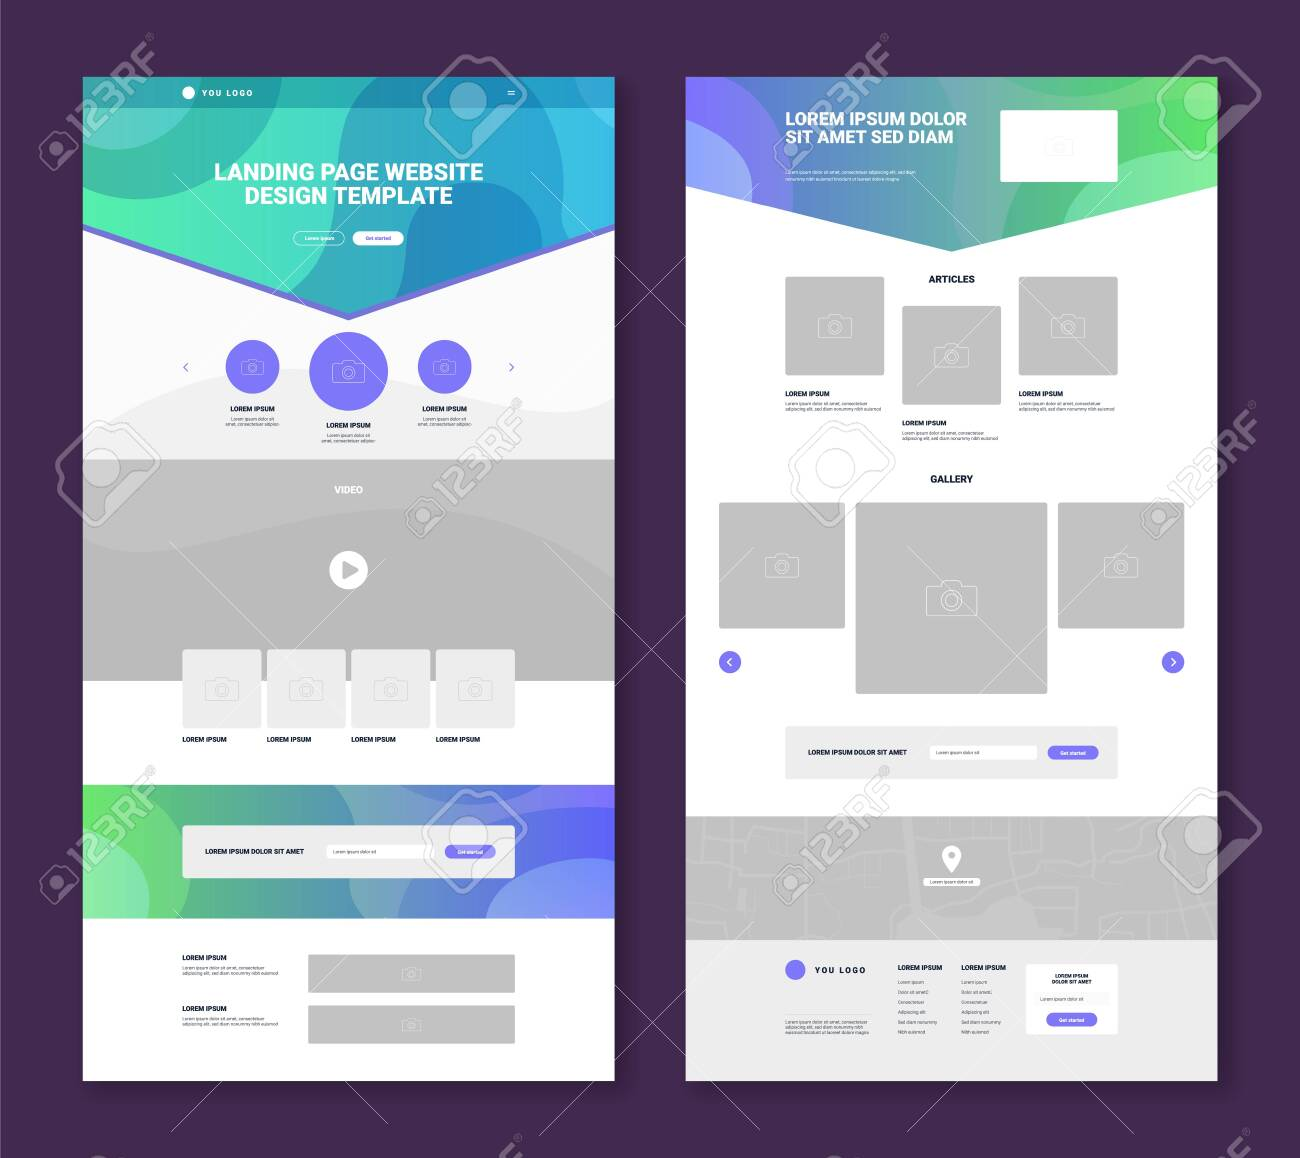 Set of two website landing page templates with simple design gallery articles video map contact form flat isolated vector illustration - 151428455